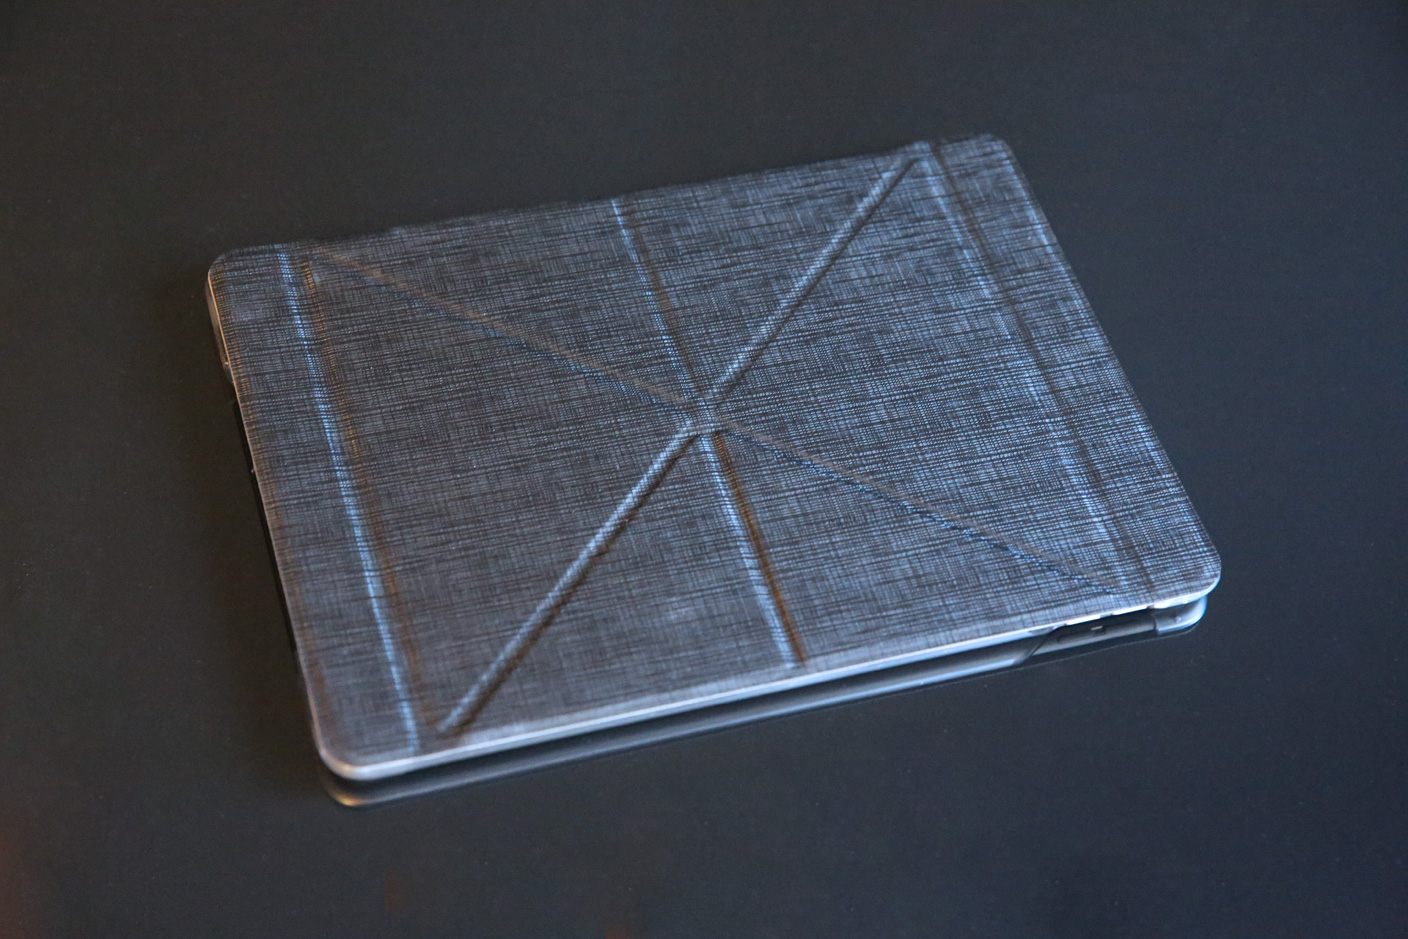 quality design b1d8c dc6d9 Review: Moshi's VersaCover for iPad Air 2 uses pyramid power to prop ...